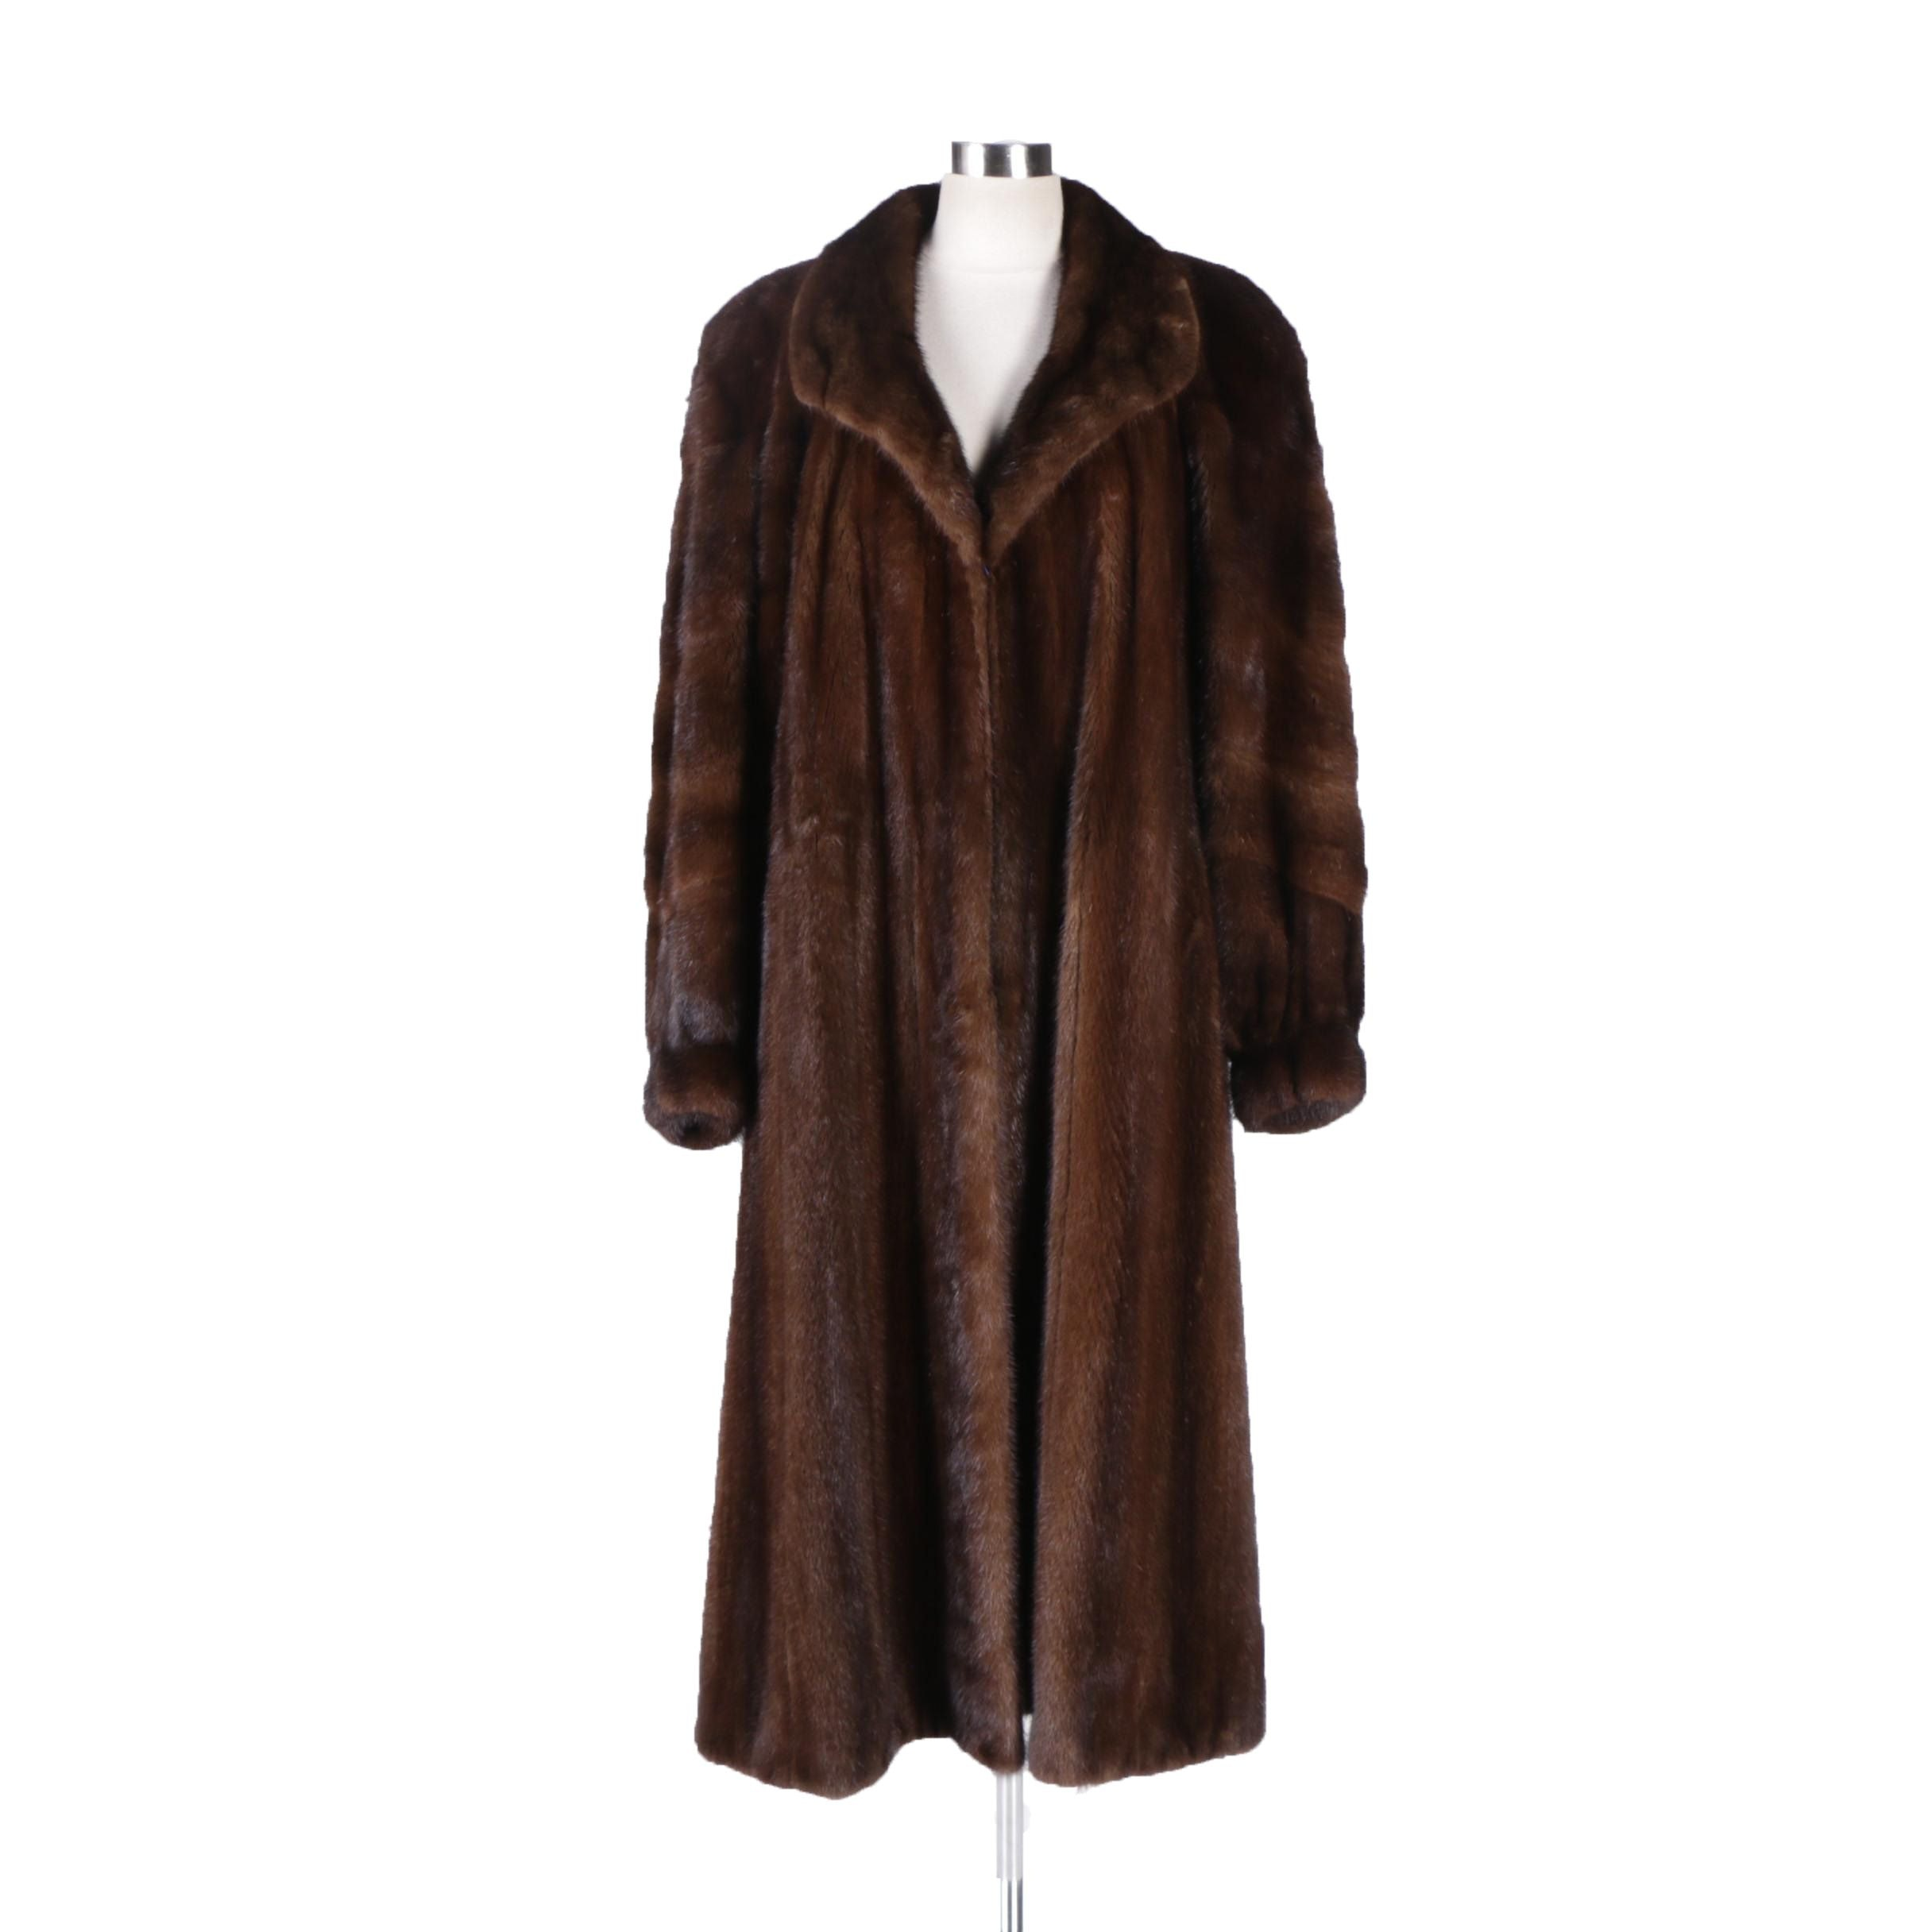 Dark Mahogany Brown Mink Fur Coat